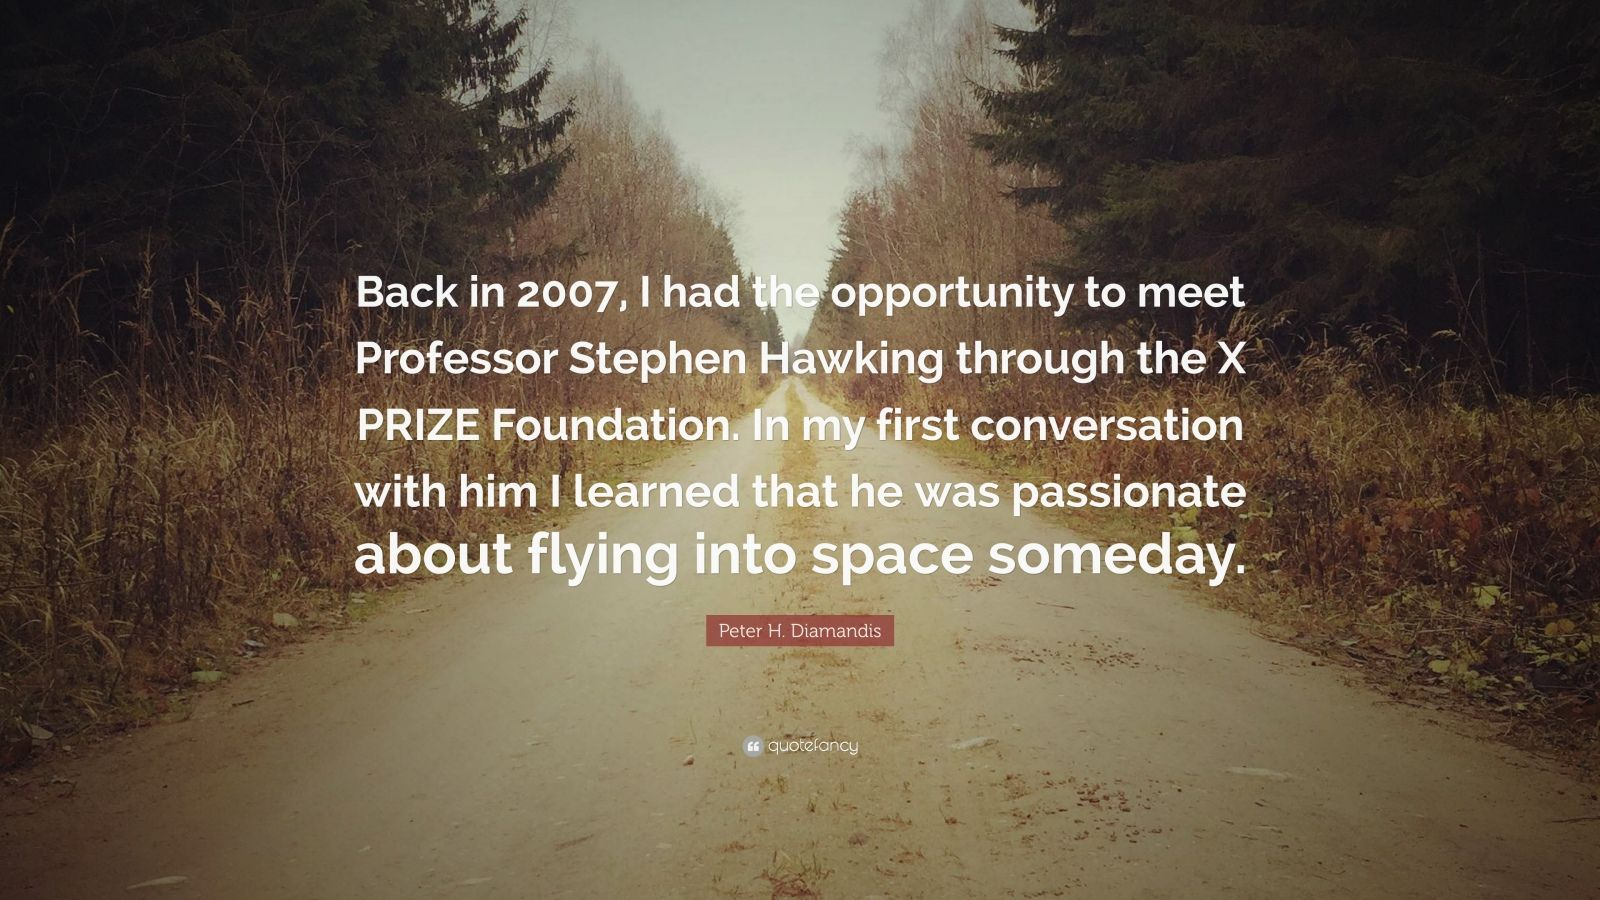 "Peter H. Diamandis Quote: ""Back in 2007, I had the opportunity to meet Professor Stephen Hawking through the X PRIZE Foundation. In my first conversation with him I learned that he was passionate about flying into space someday."""